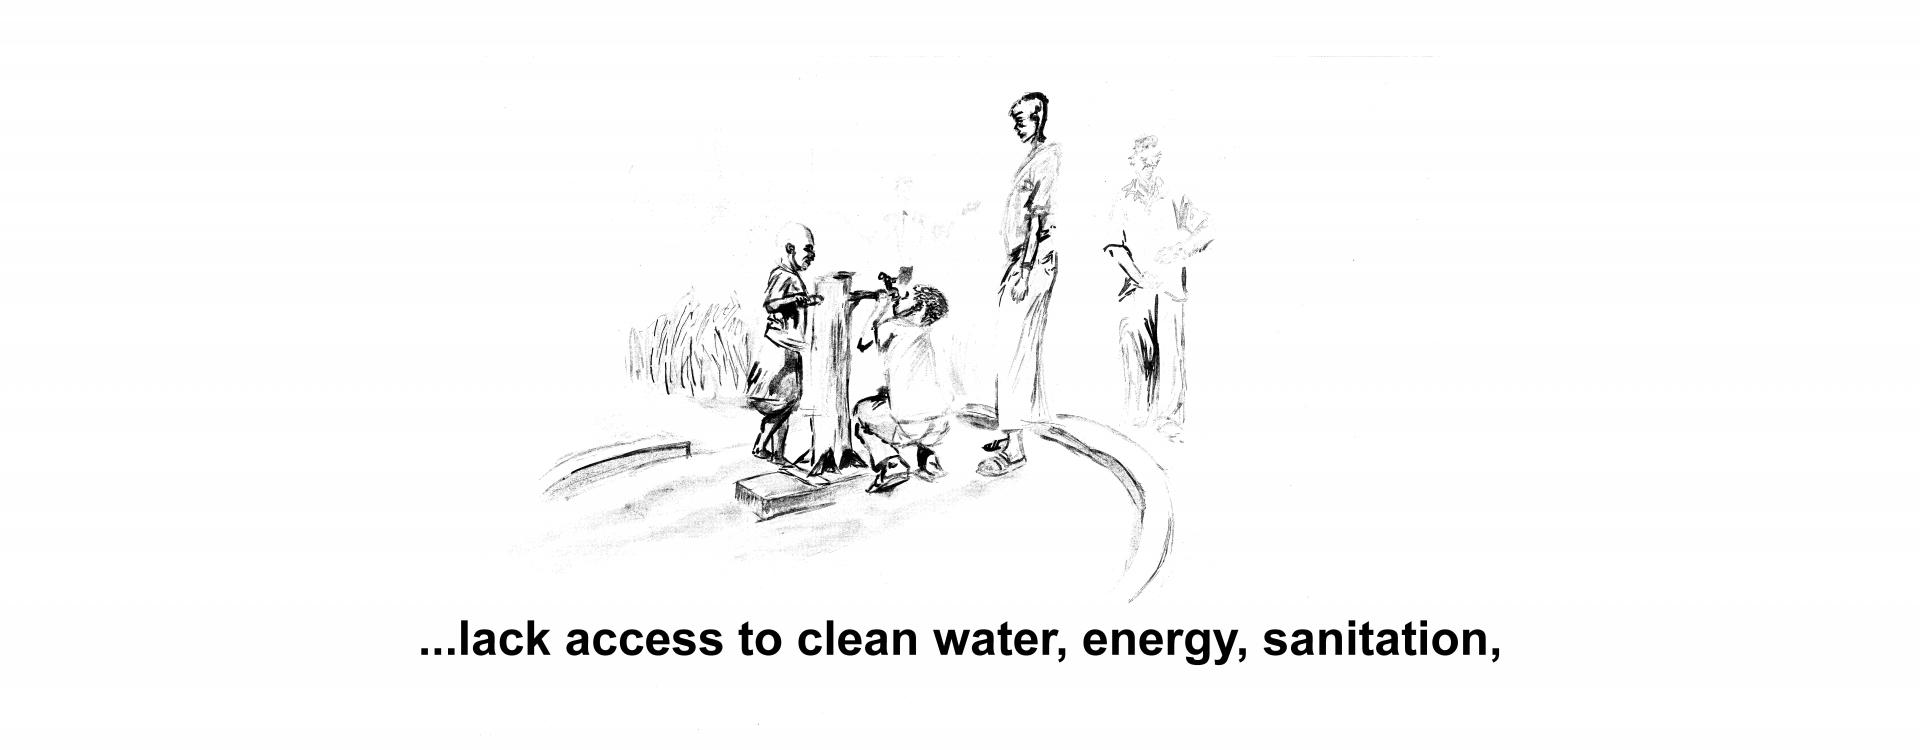 ...lack access to clean water, energy, sanitation,